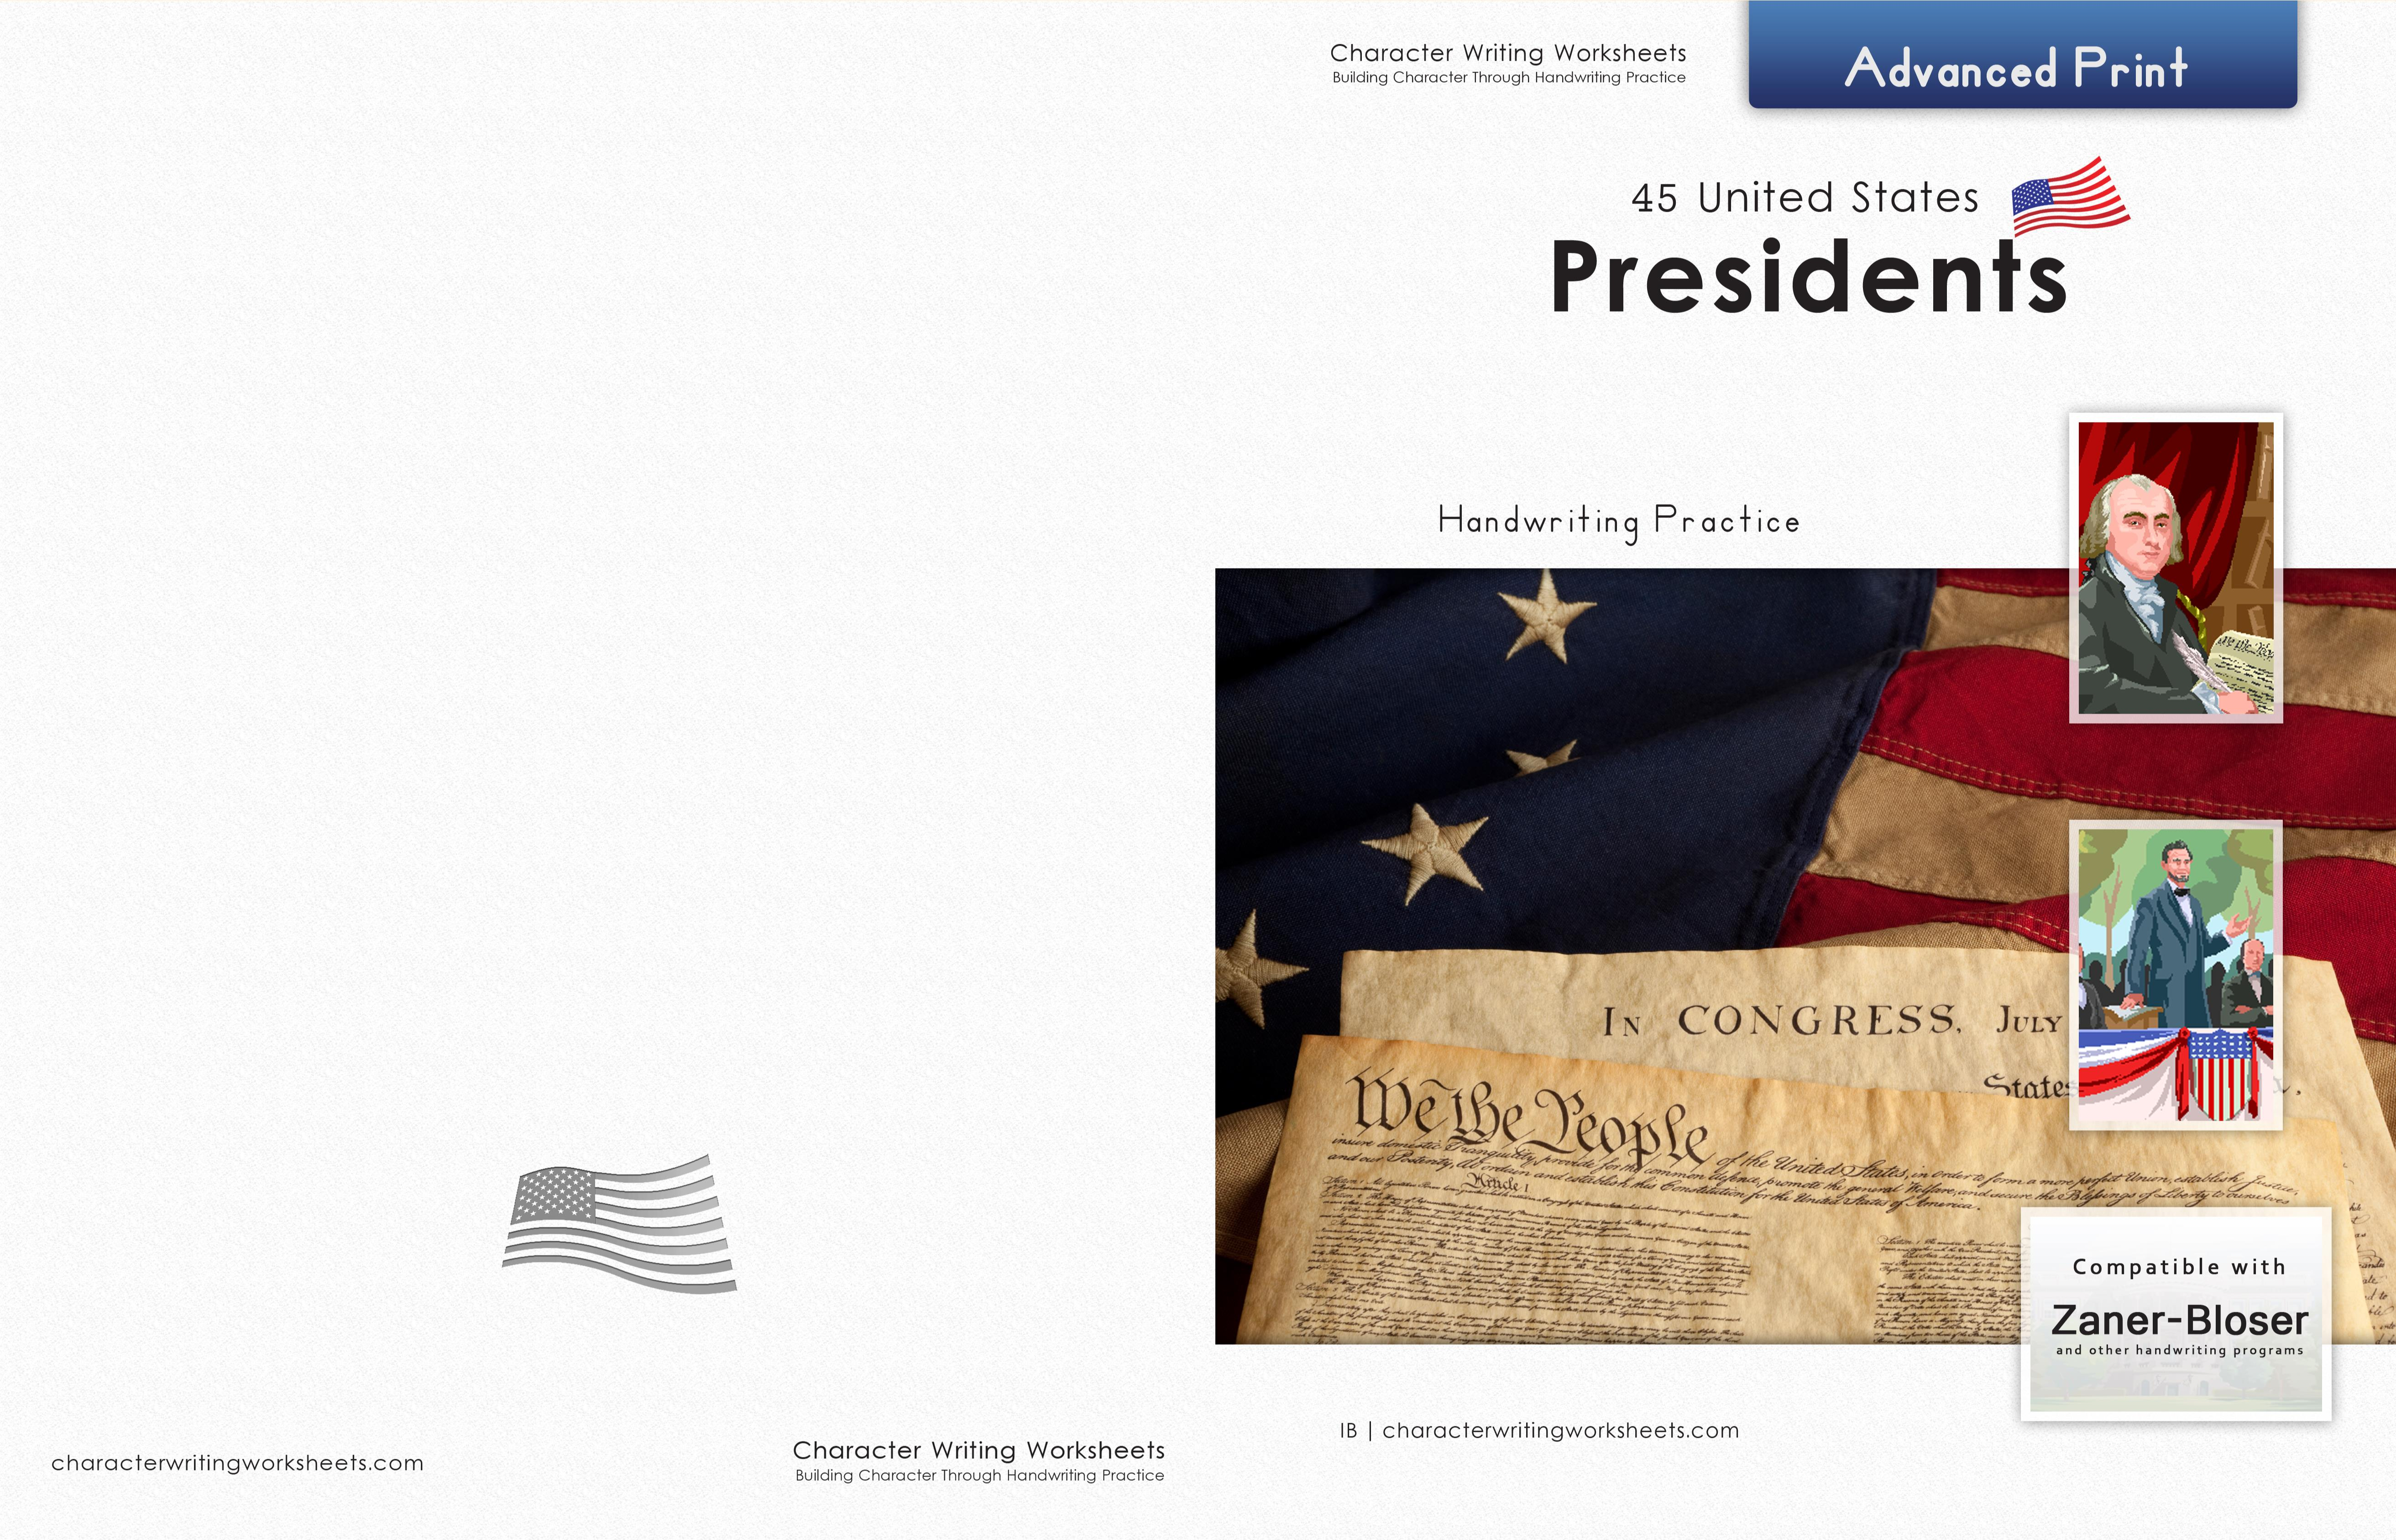 The Presidents - ZB - Advanced Print cover image